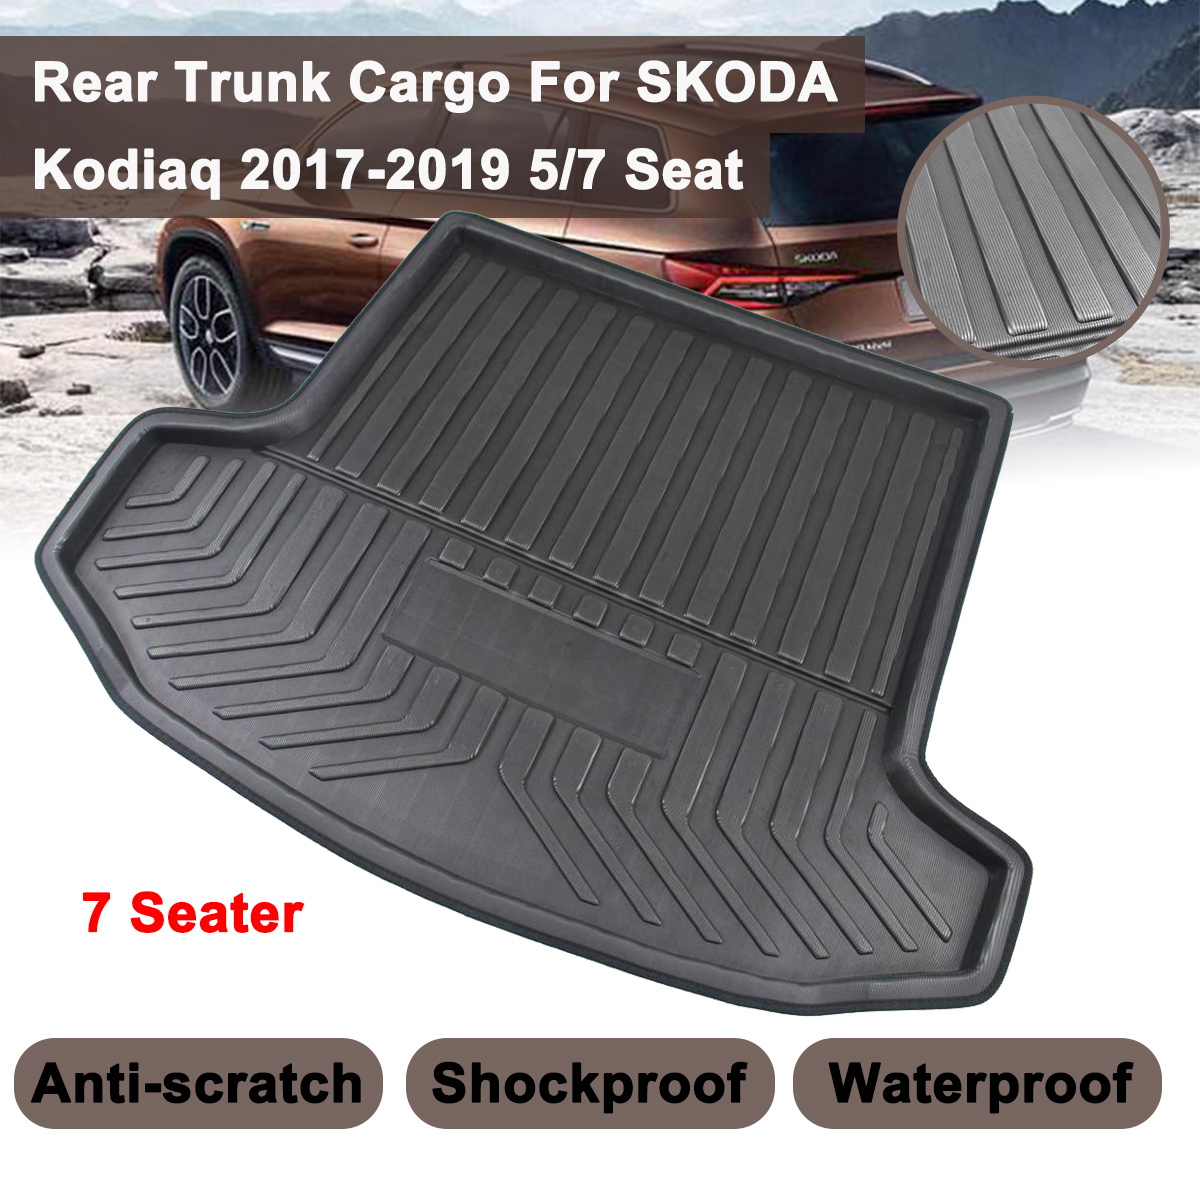 Floor Carpet Kick Pad Matt Mat For SKODA Kodiaq 5/7 Seat Seater 2017 2018 2019 Car Cargo Liner Boot Tray Rear Trunk Cover|Floor Mats| |  - title=